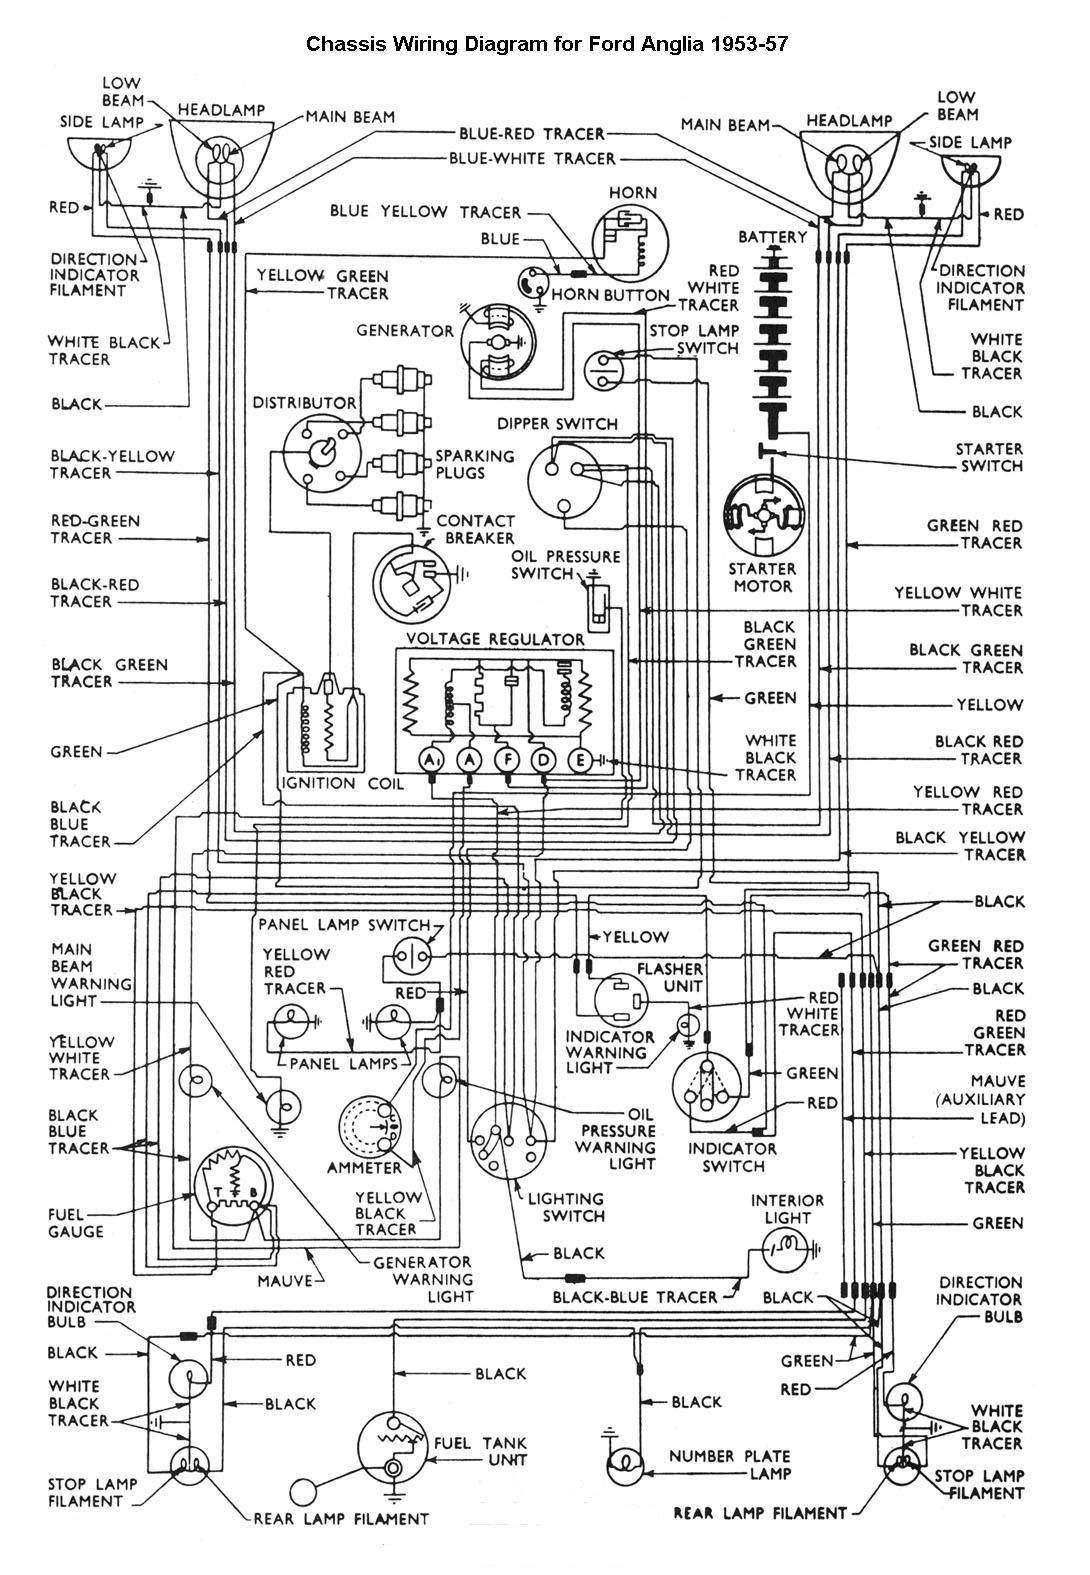 hight resolution of car wiring diagram mech truck repair cars motor car rover 75 electrical circuit diagrams auto repair manual forum